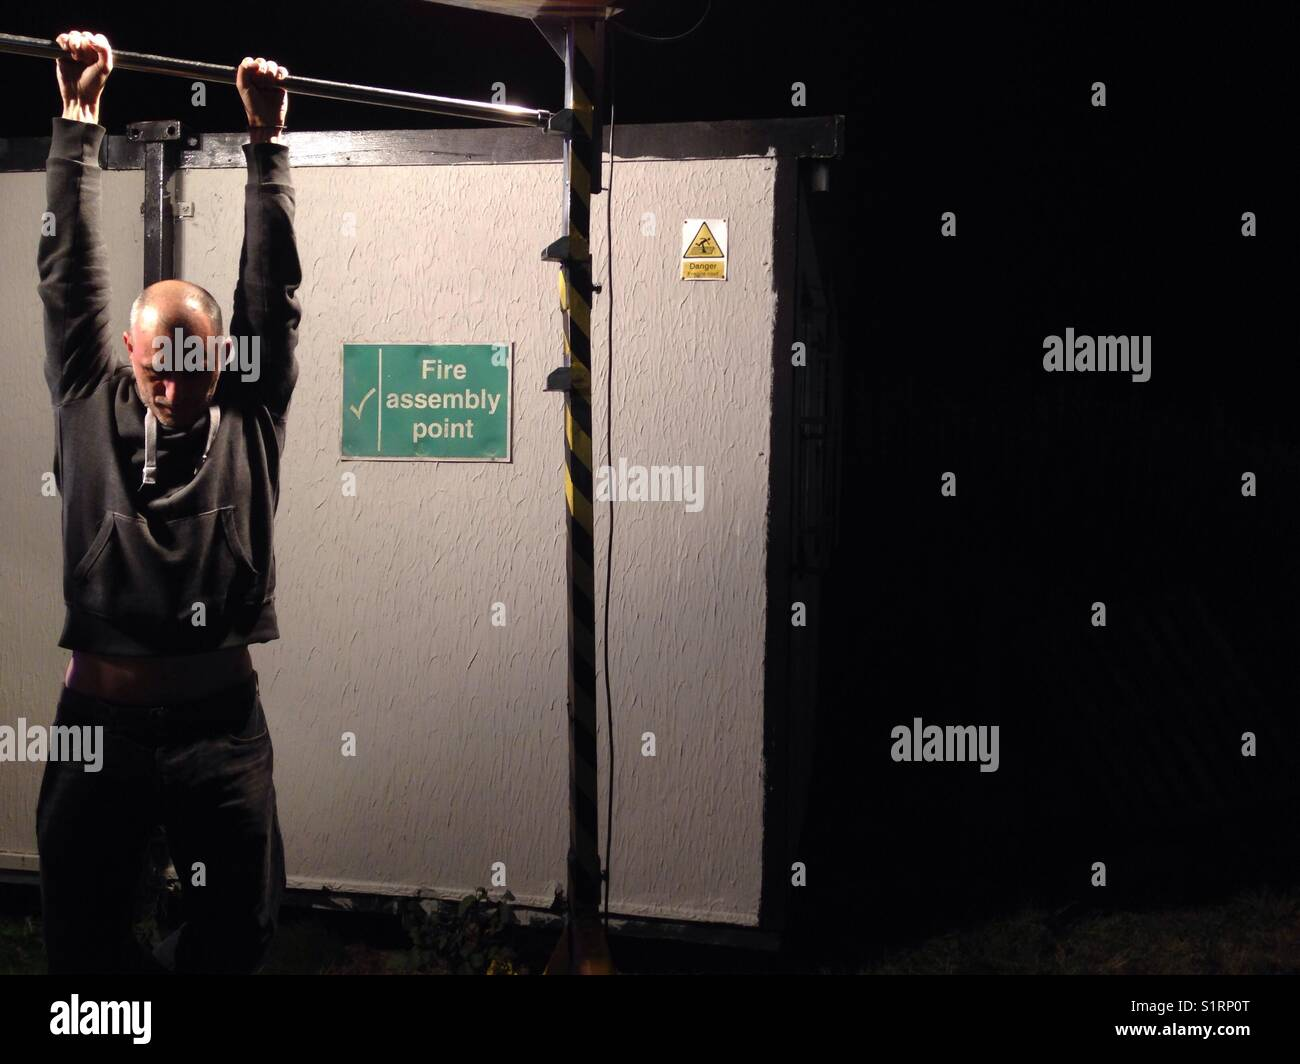 Man hanging from a bar at night - Stock Image